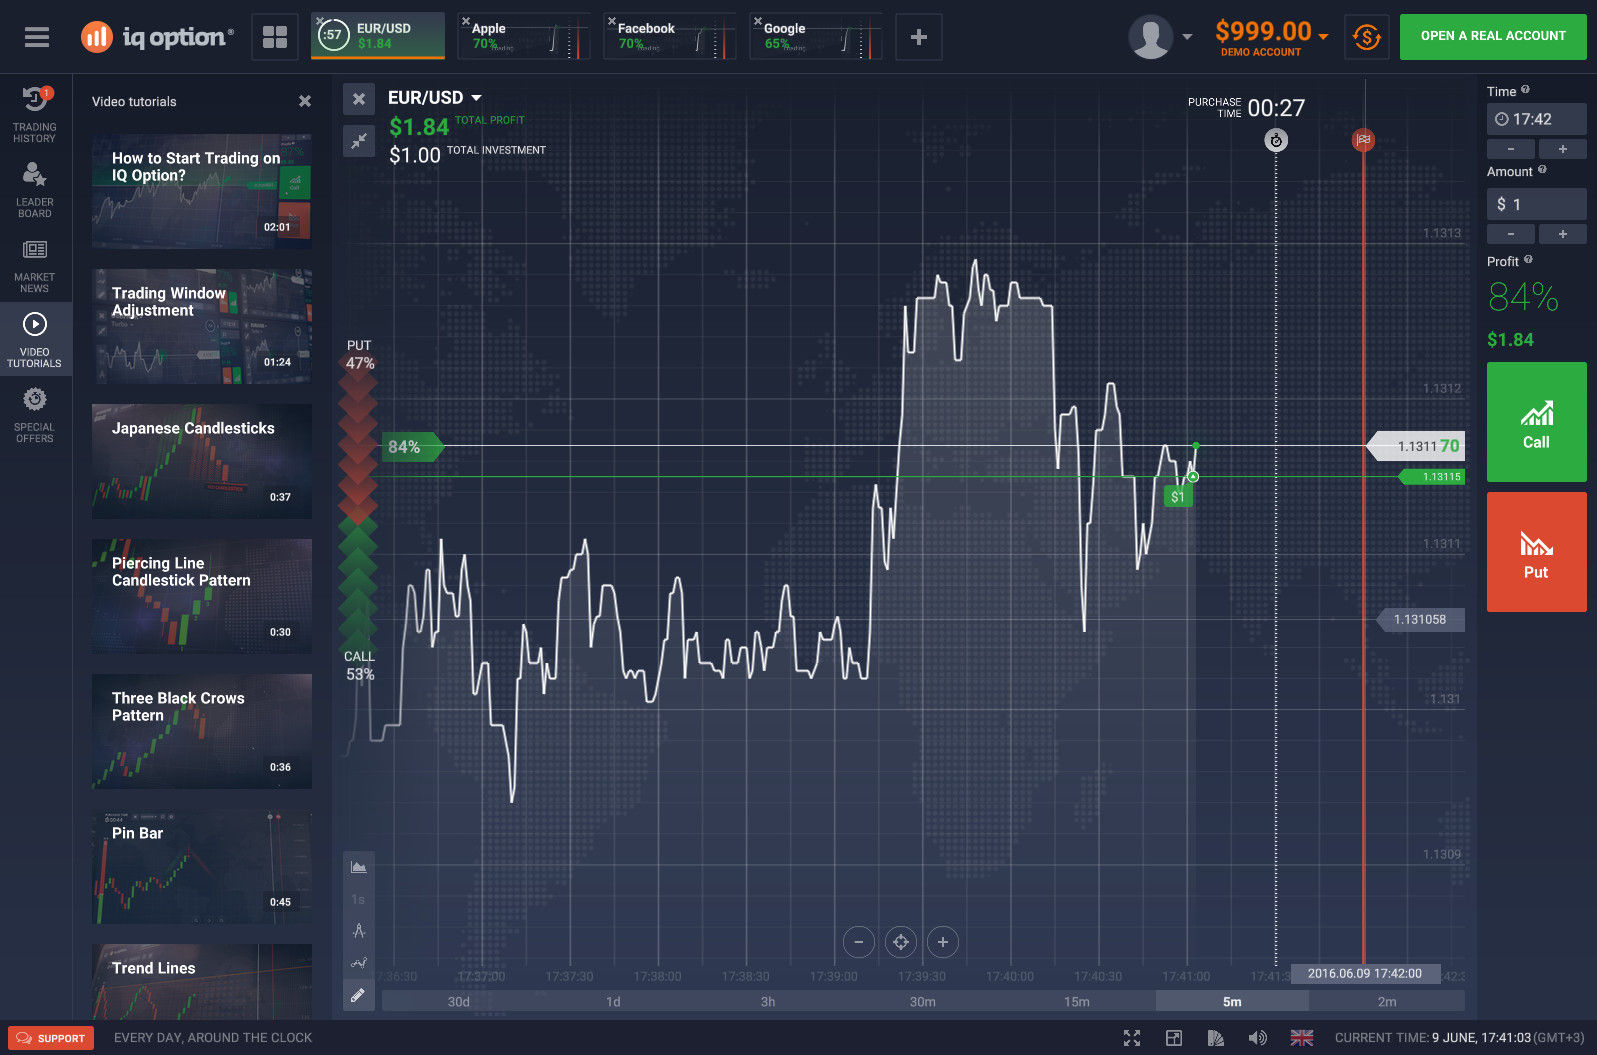 turbo binary options iq option program în care puteți câștiga bani reali